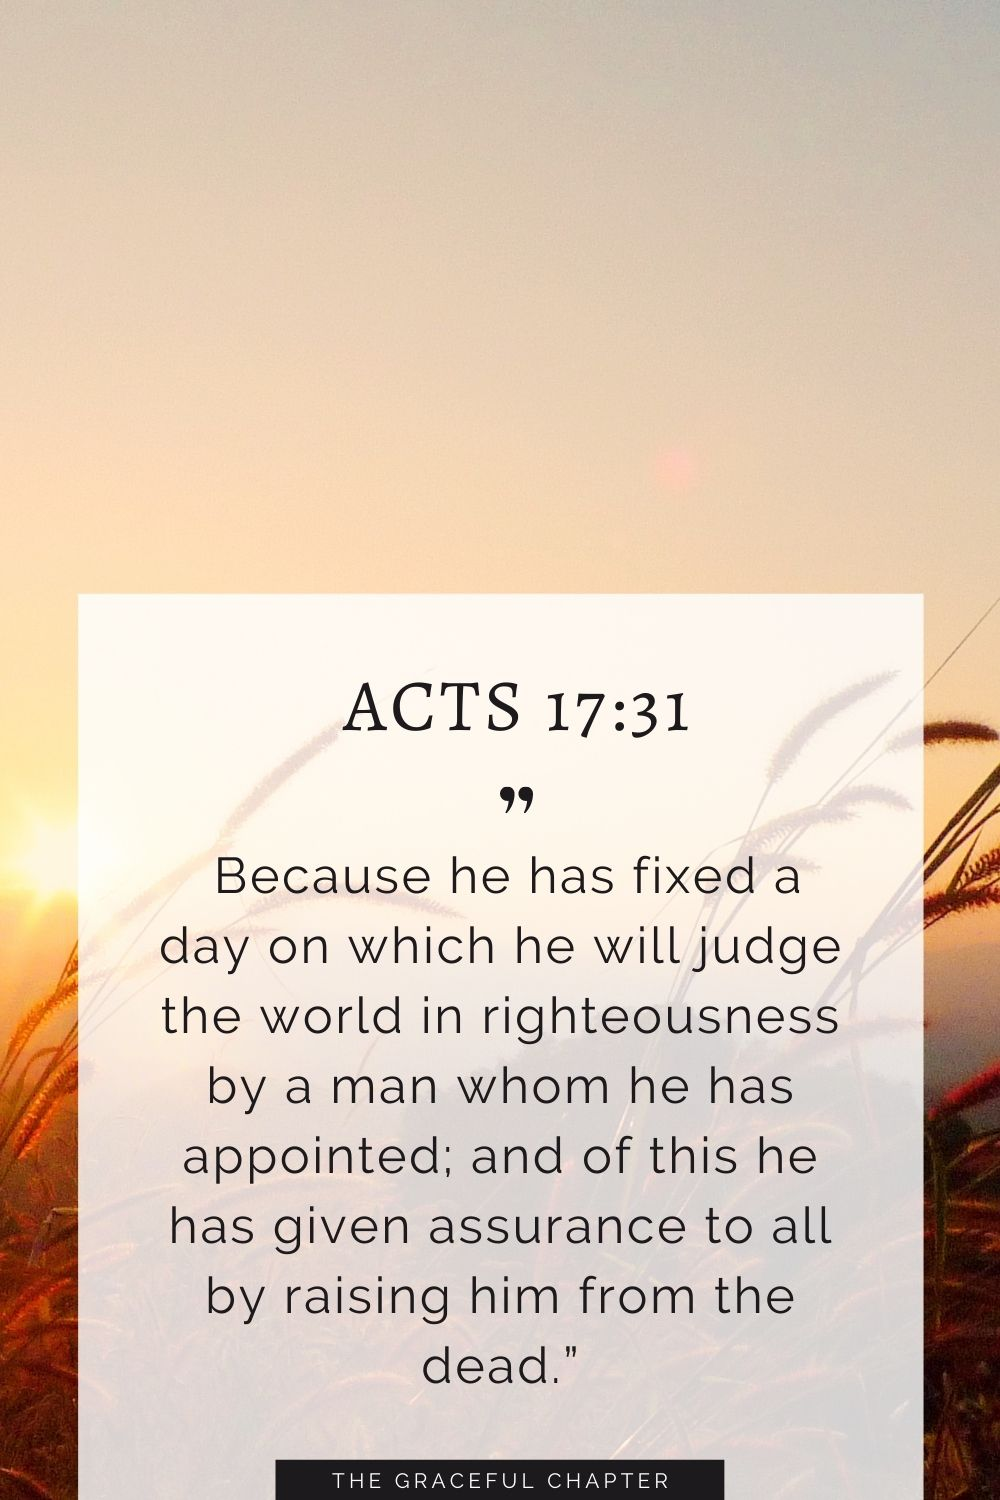 """Because he has fixed a day on which he will judge the world in righteousness by a man whom he has appointed; and of this he has given assurance to all by raising him from the dead."""" Acts 17:31"""